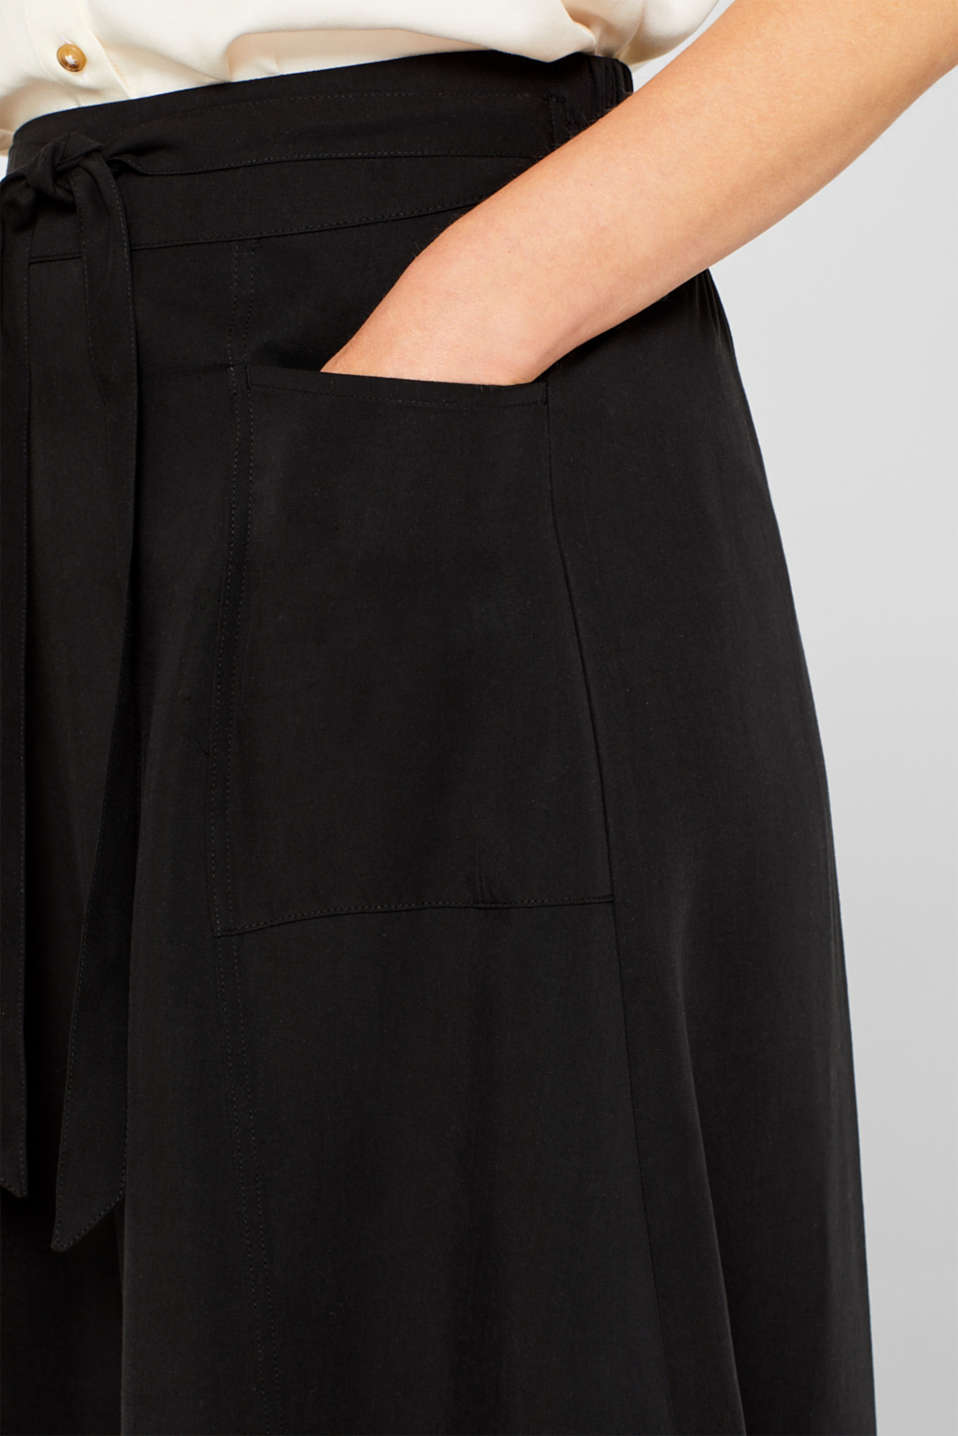 A-line skirt with pockets, 100% lyocell, BLACK, detail image number 2